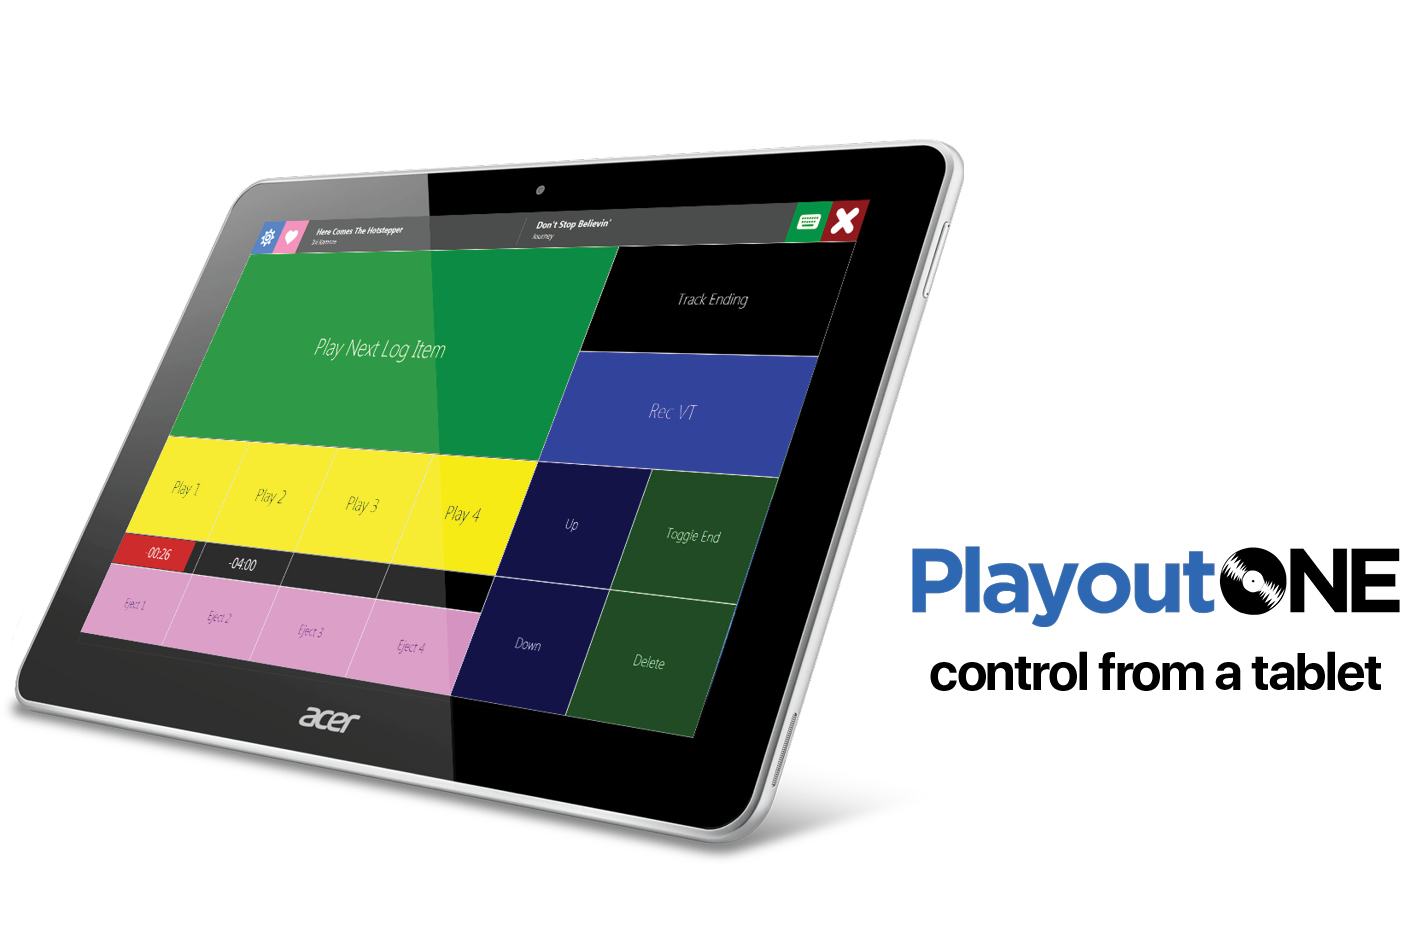 Control PlayoutONE from a Tablet